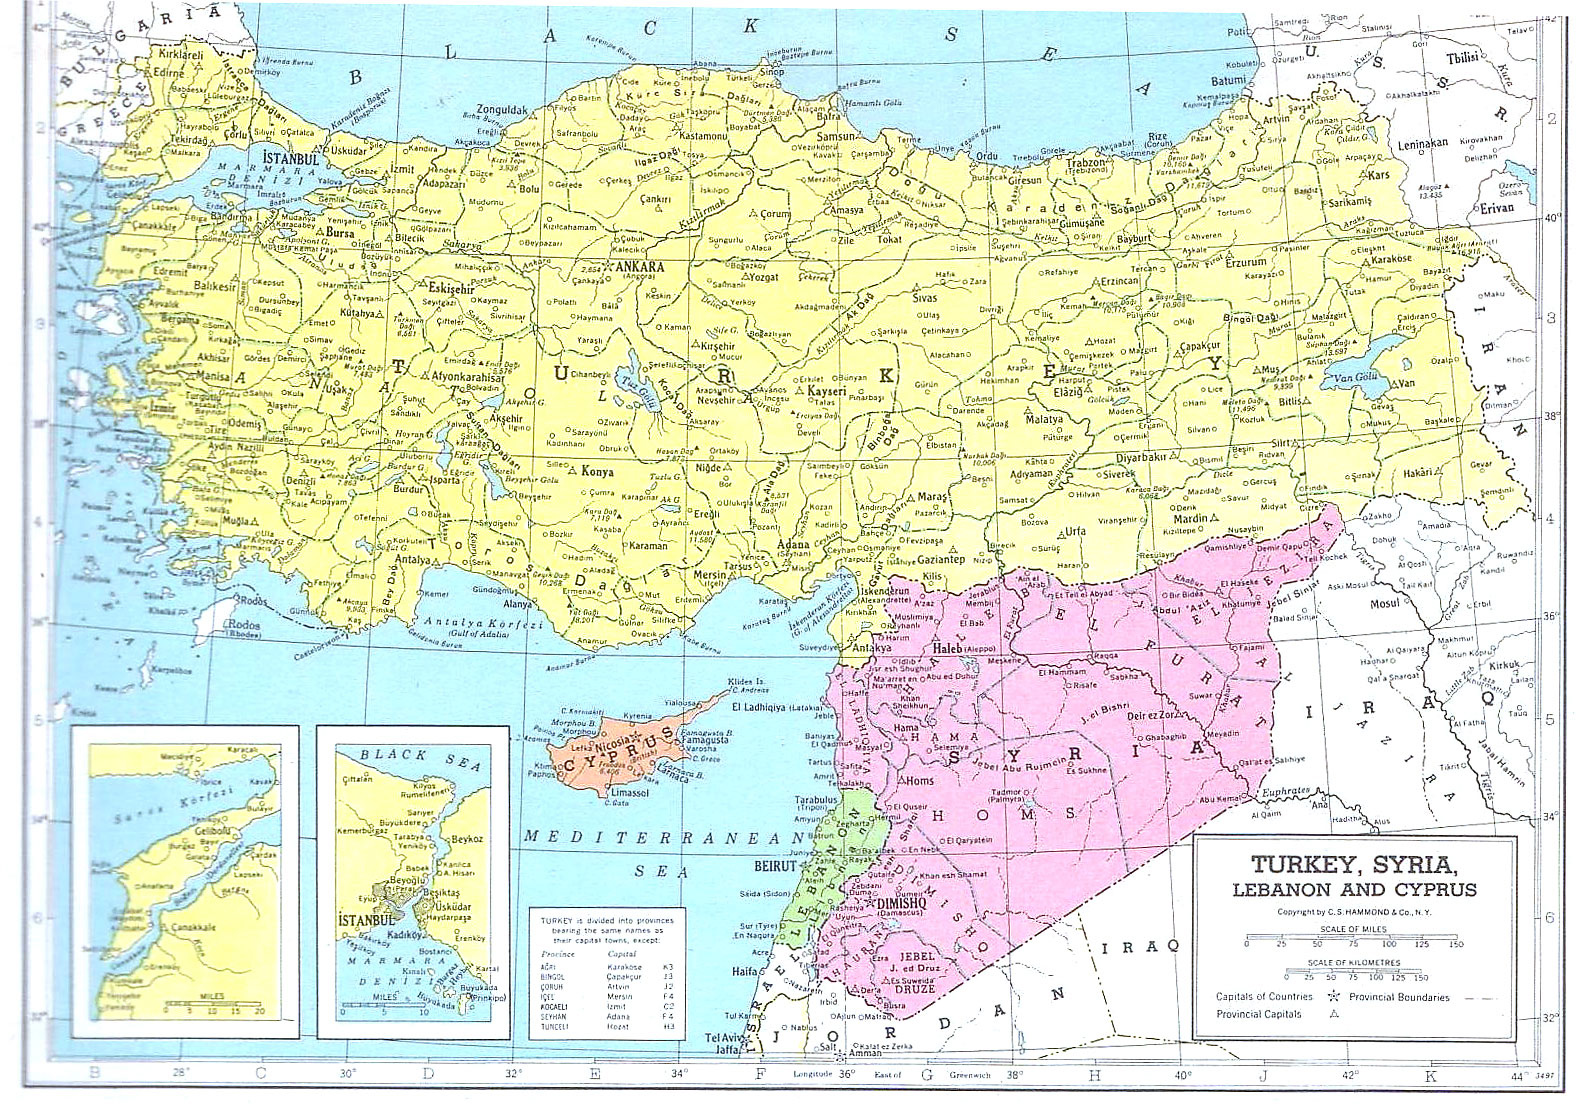 Detailed Political Map Of Syria And Turkey Syria And Turkey - Map of syria and turkey